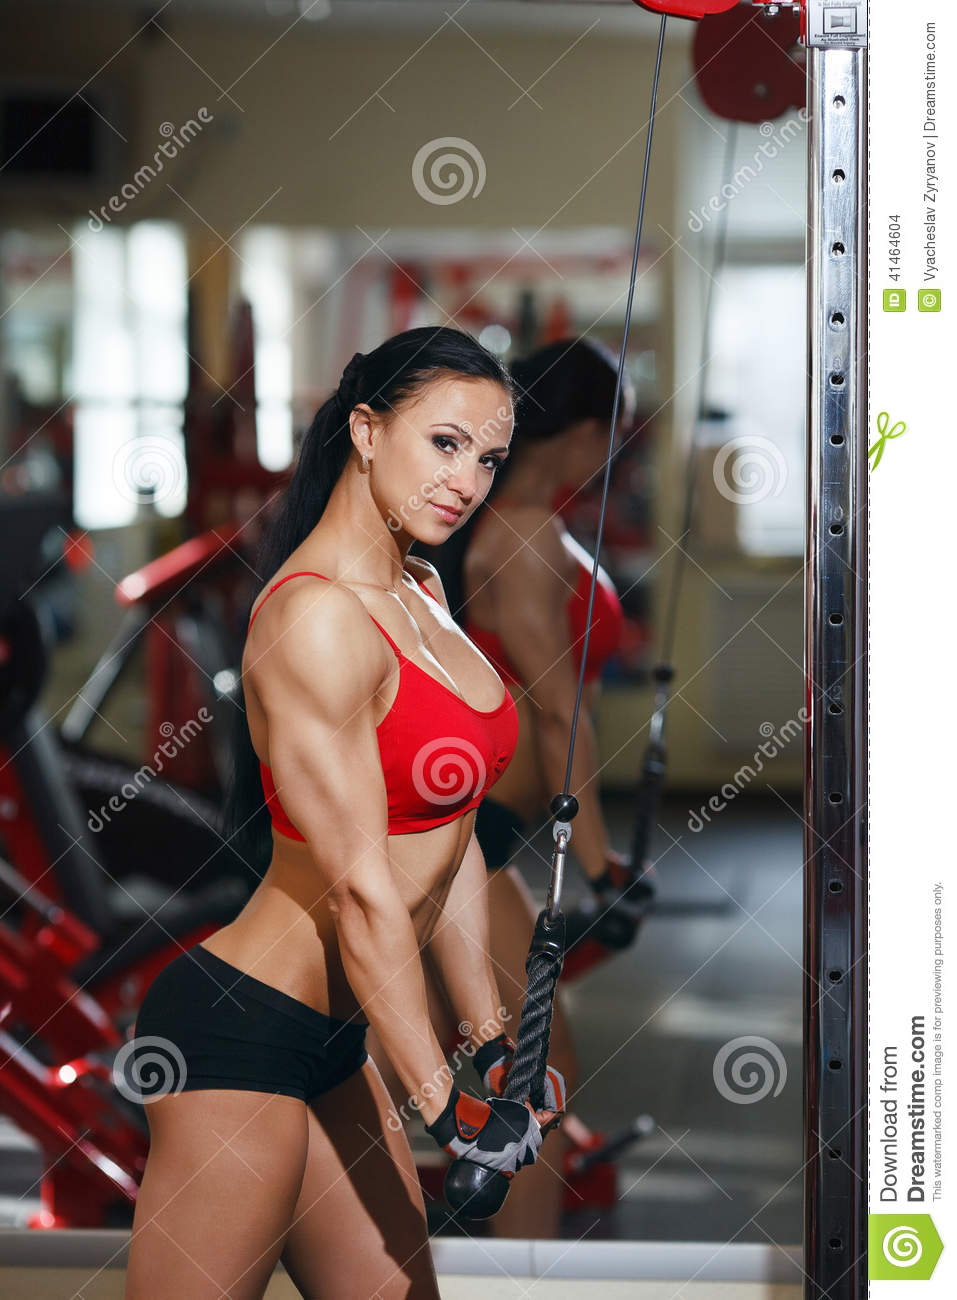 Girl In A Gym Doing Triceps Exercises On Block Exerciser